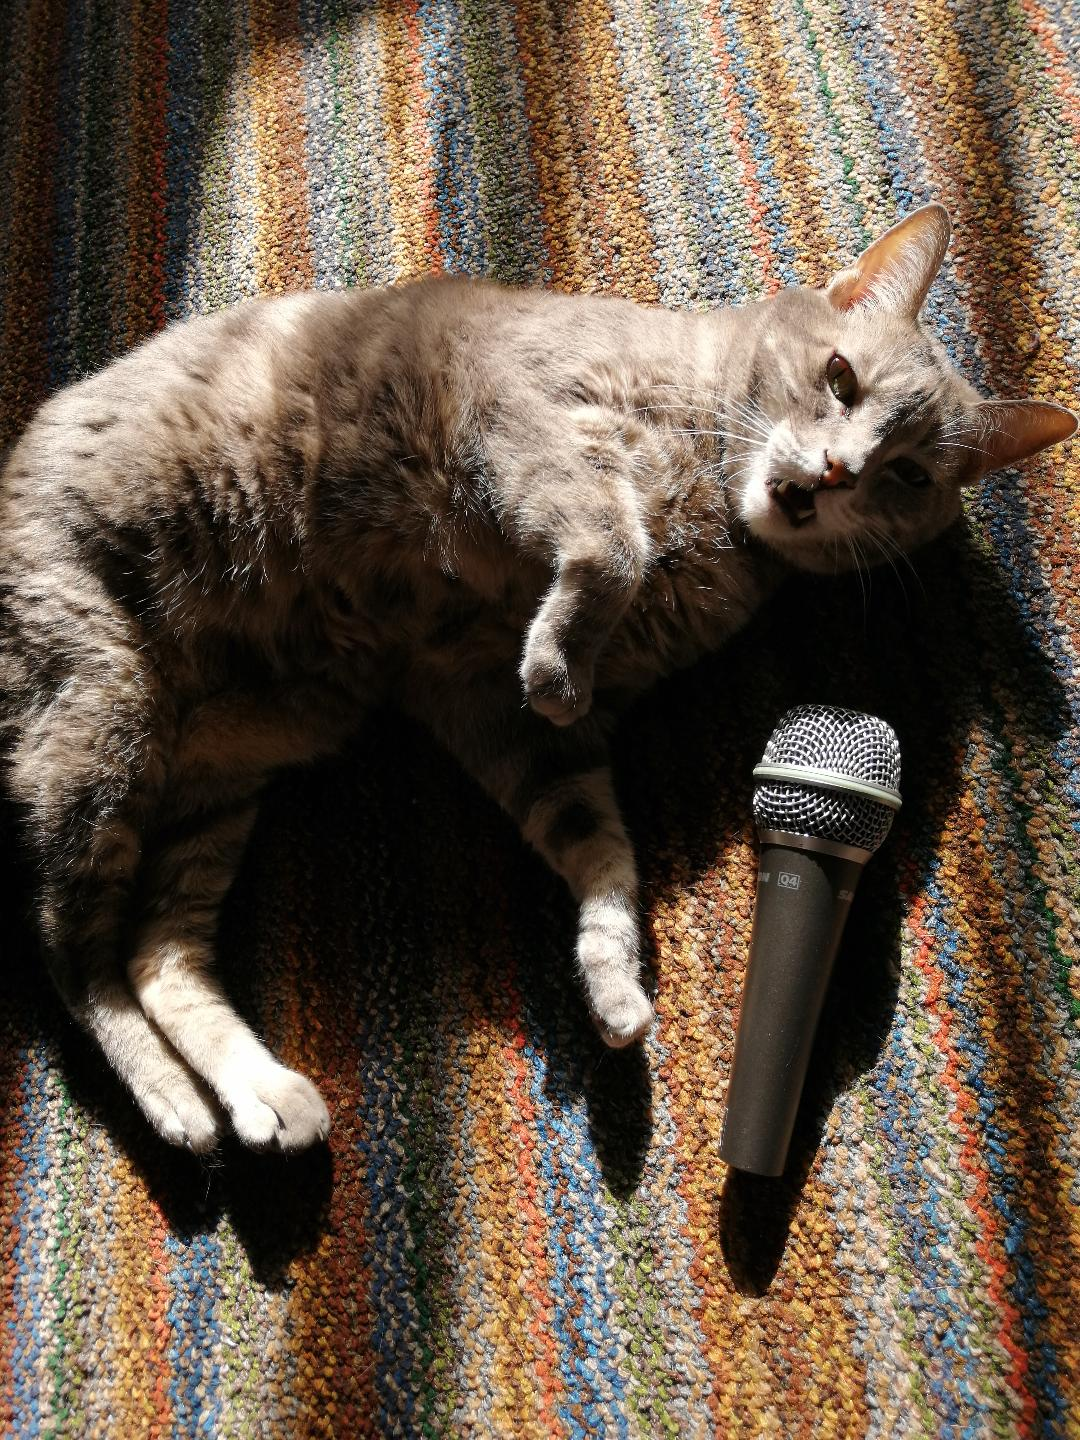 The Cat Who Tried To Sing ~ a short poem by Katrina Curtiss 4/13/2020